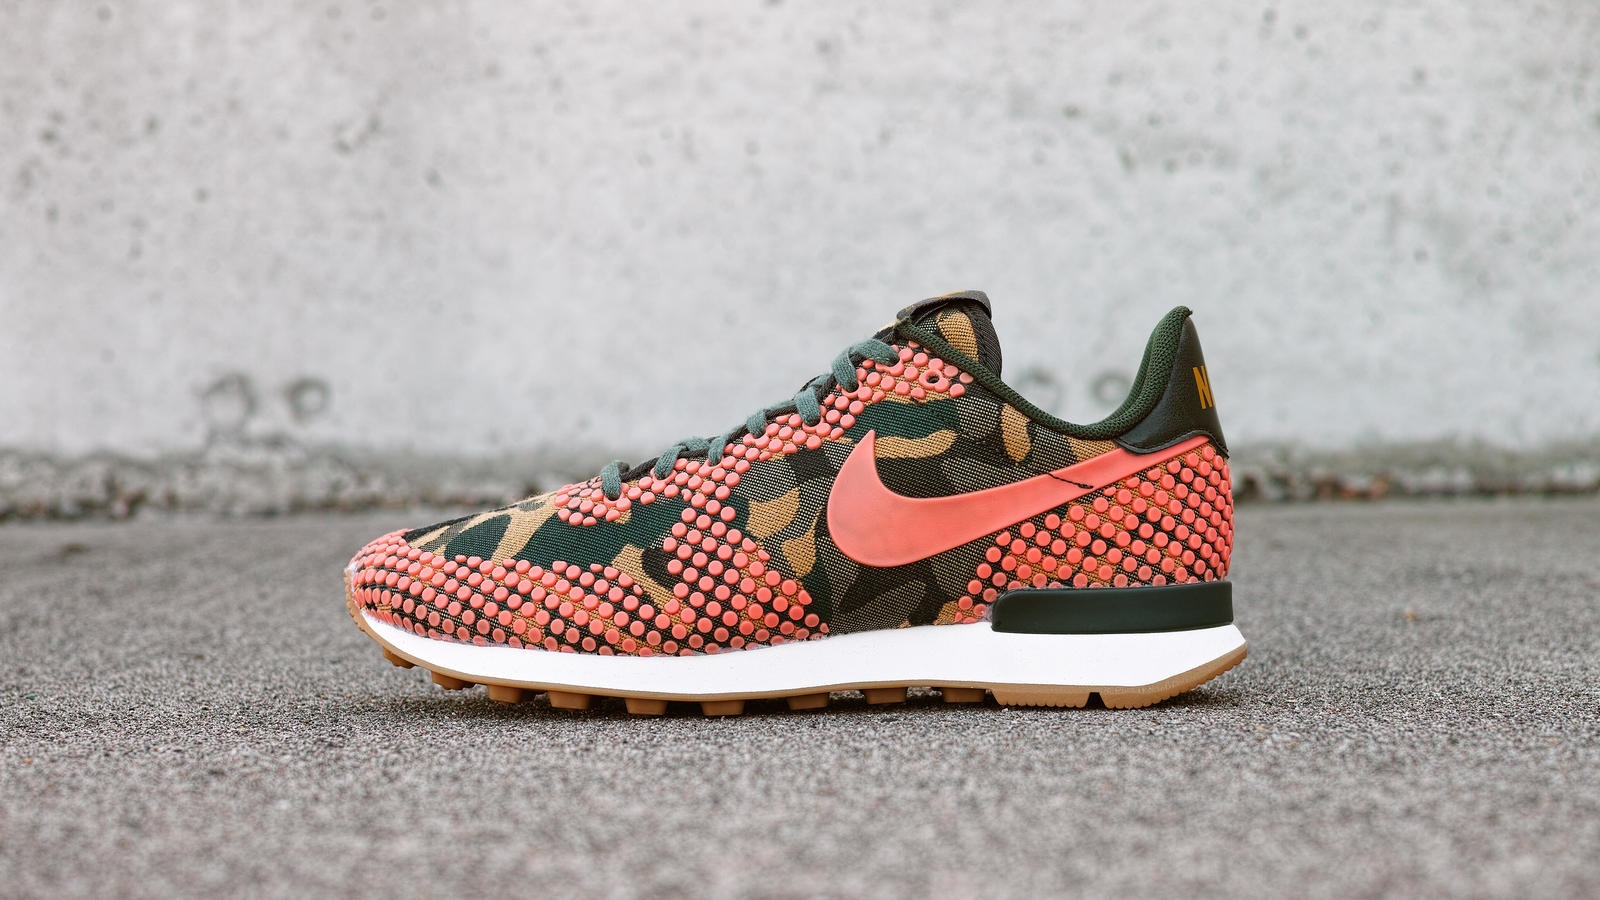 Nike internationalist jacquard premium 1 hd 1600